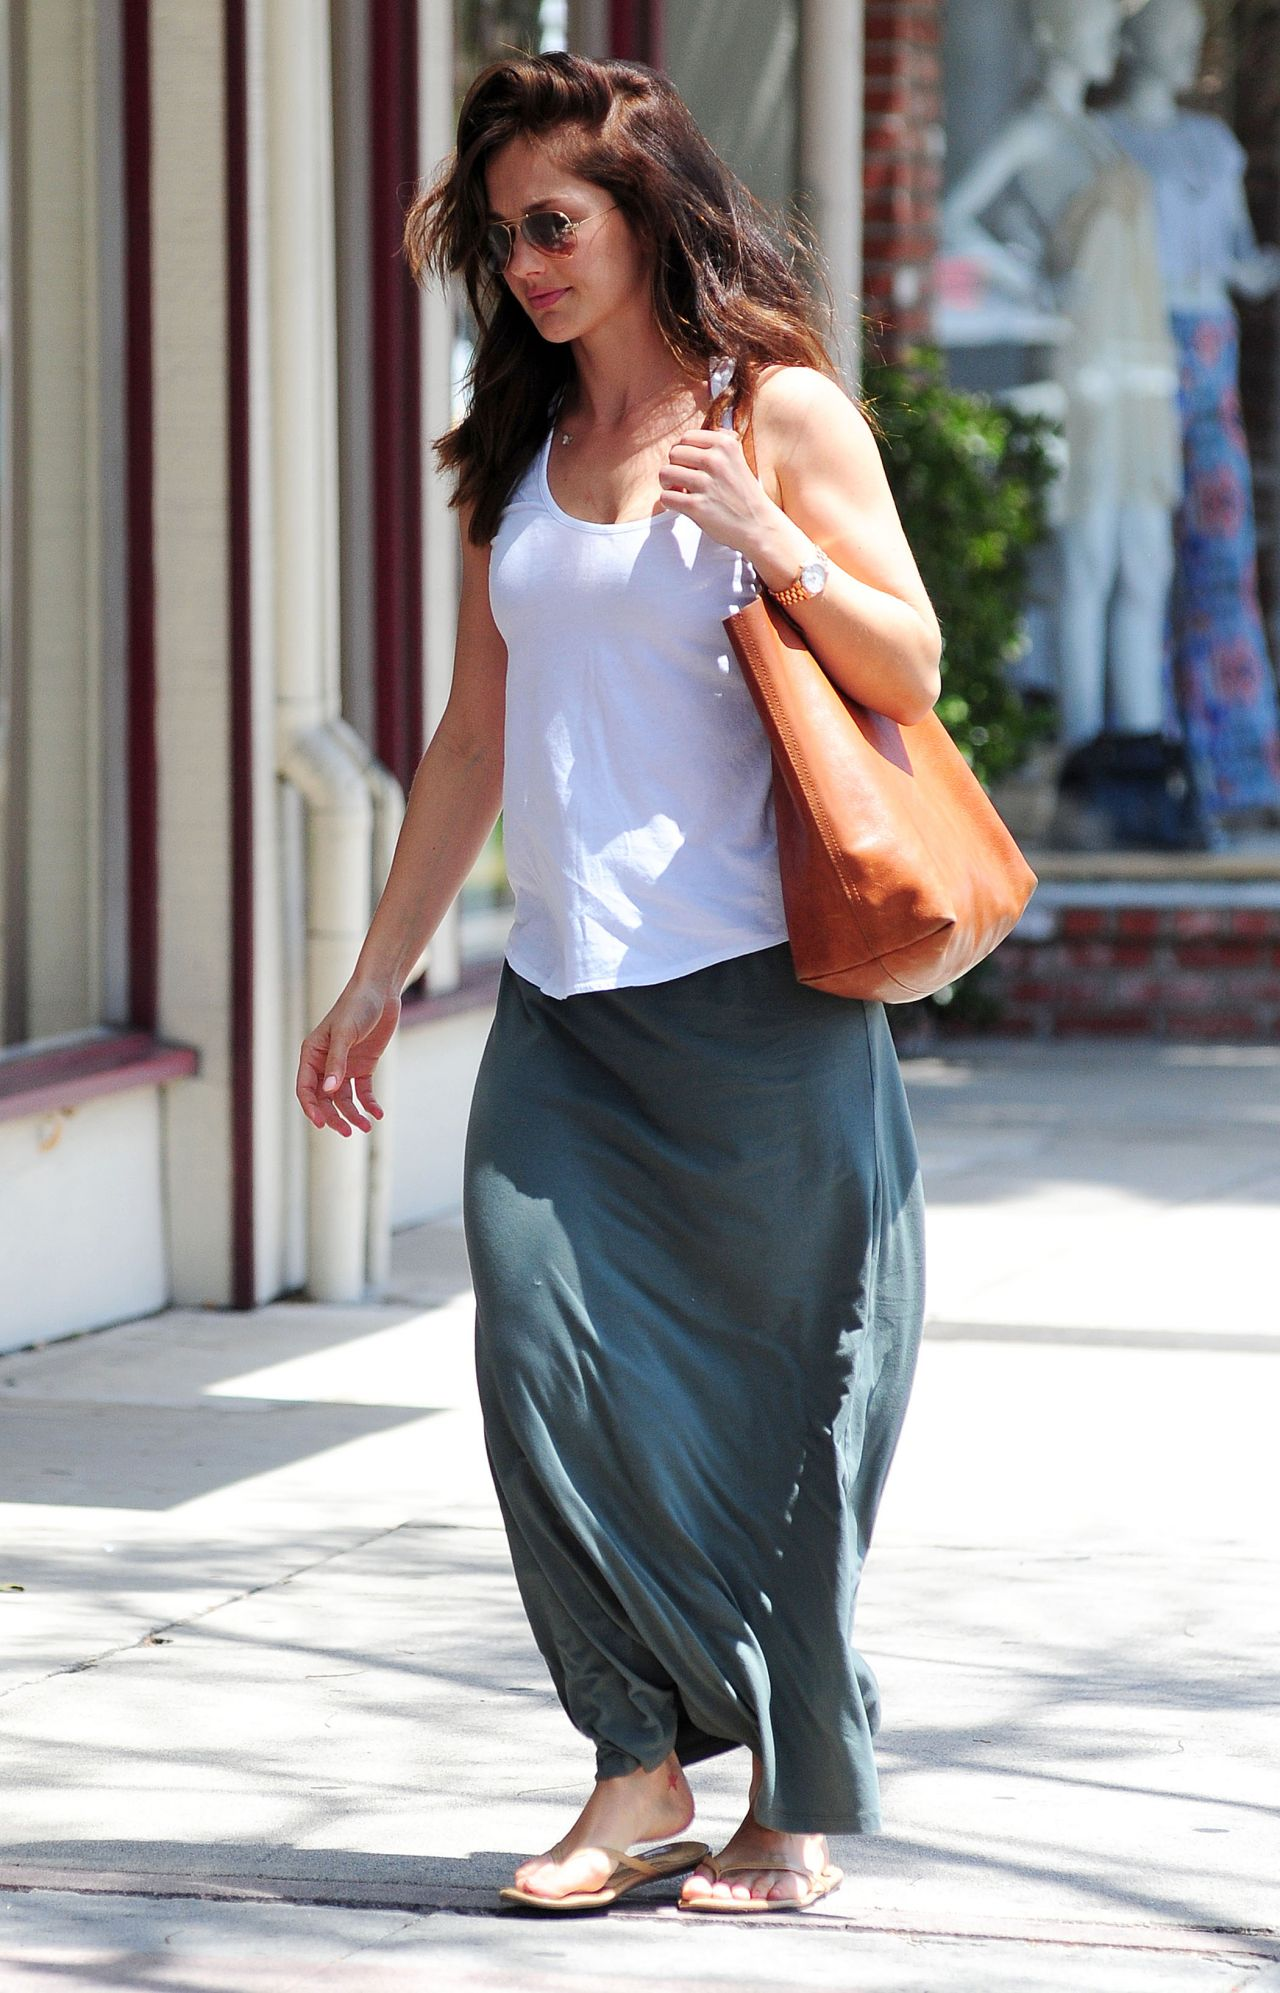 minka kelly street style out in los angeles may 2014